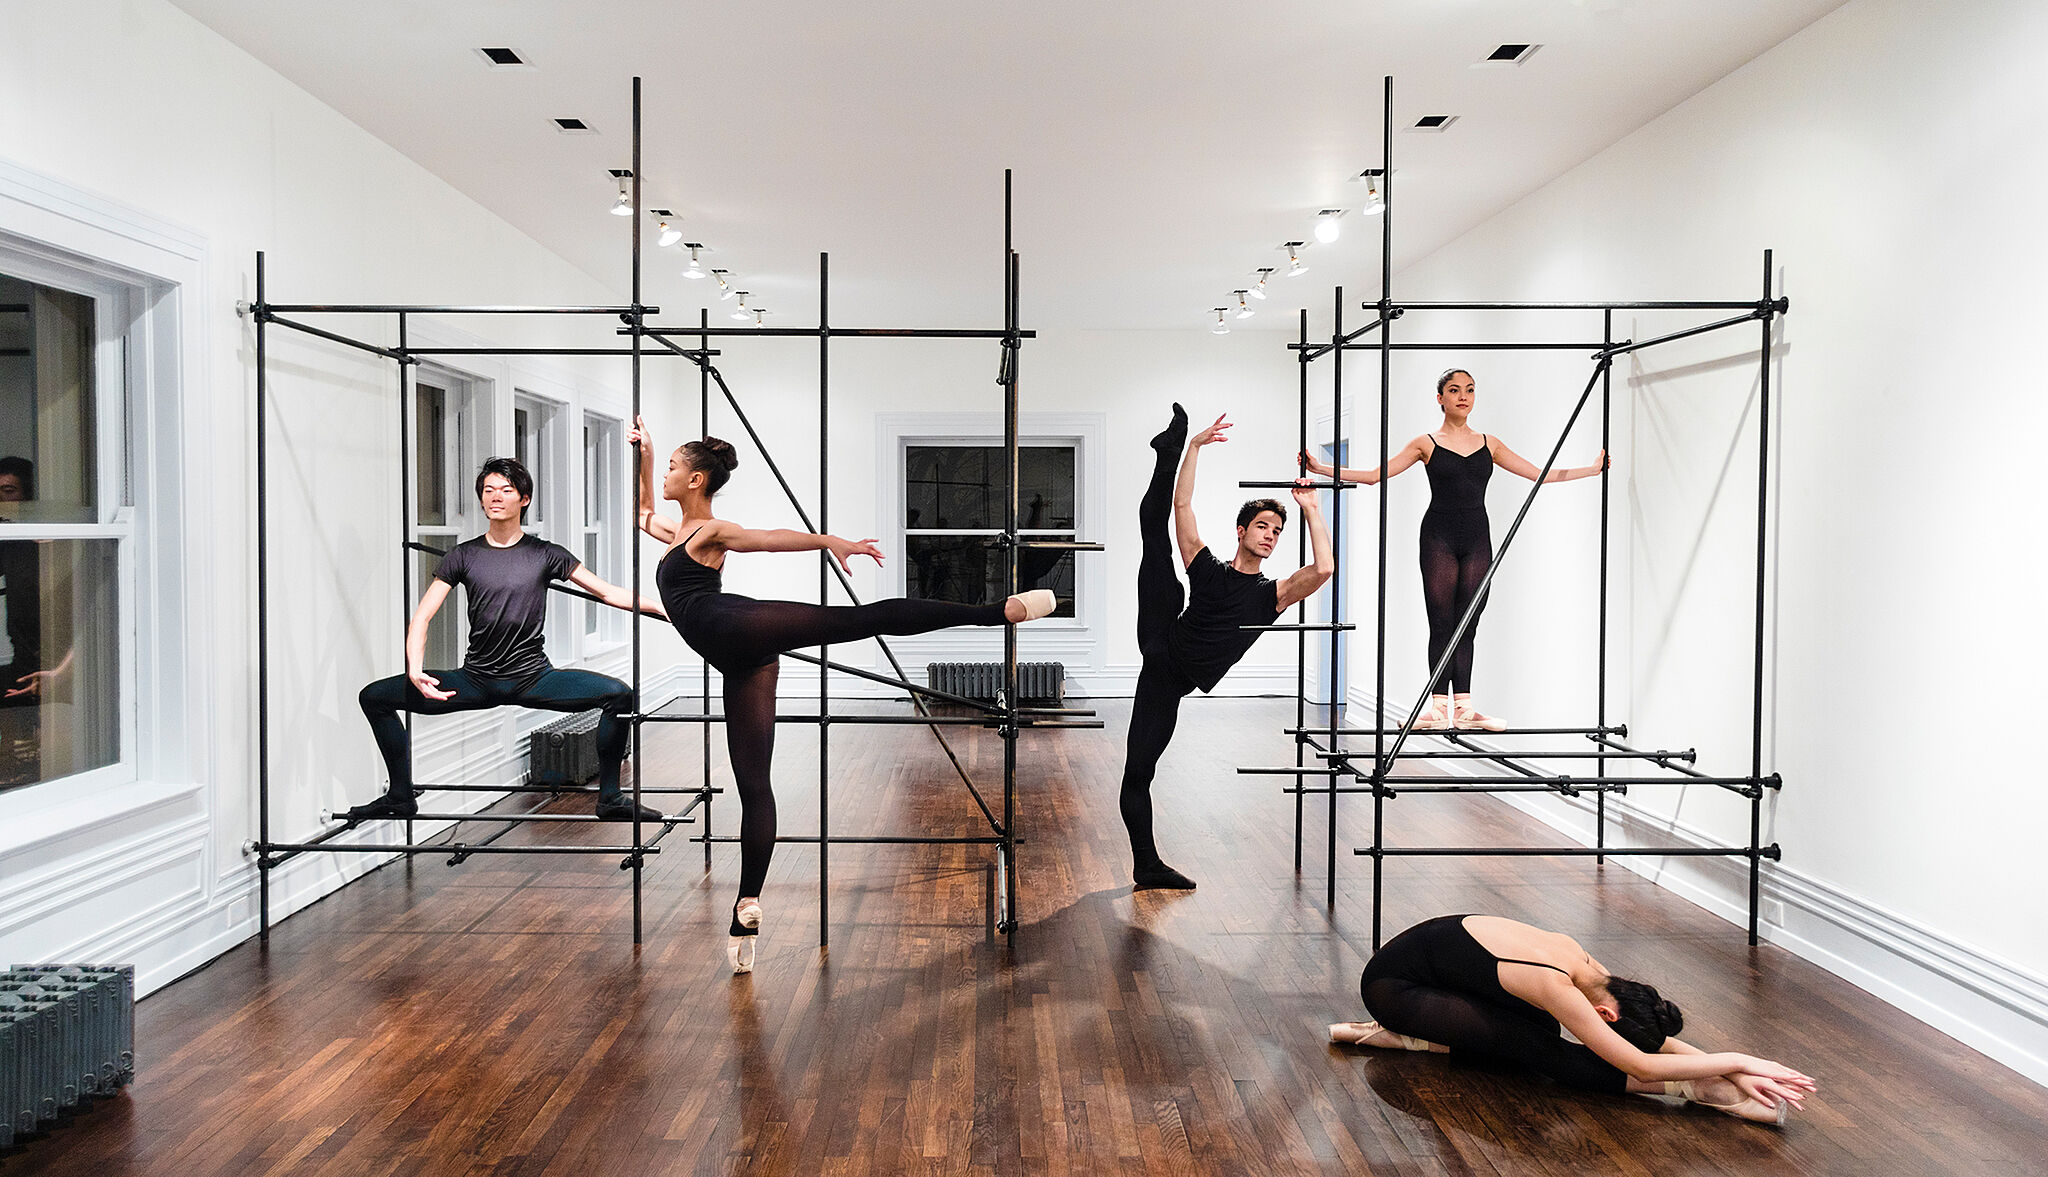 Four dancers pose in a rehearsal space with metal bar structures.